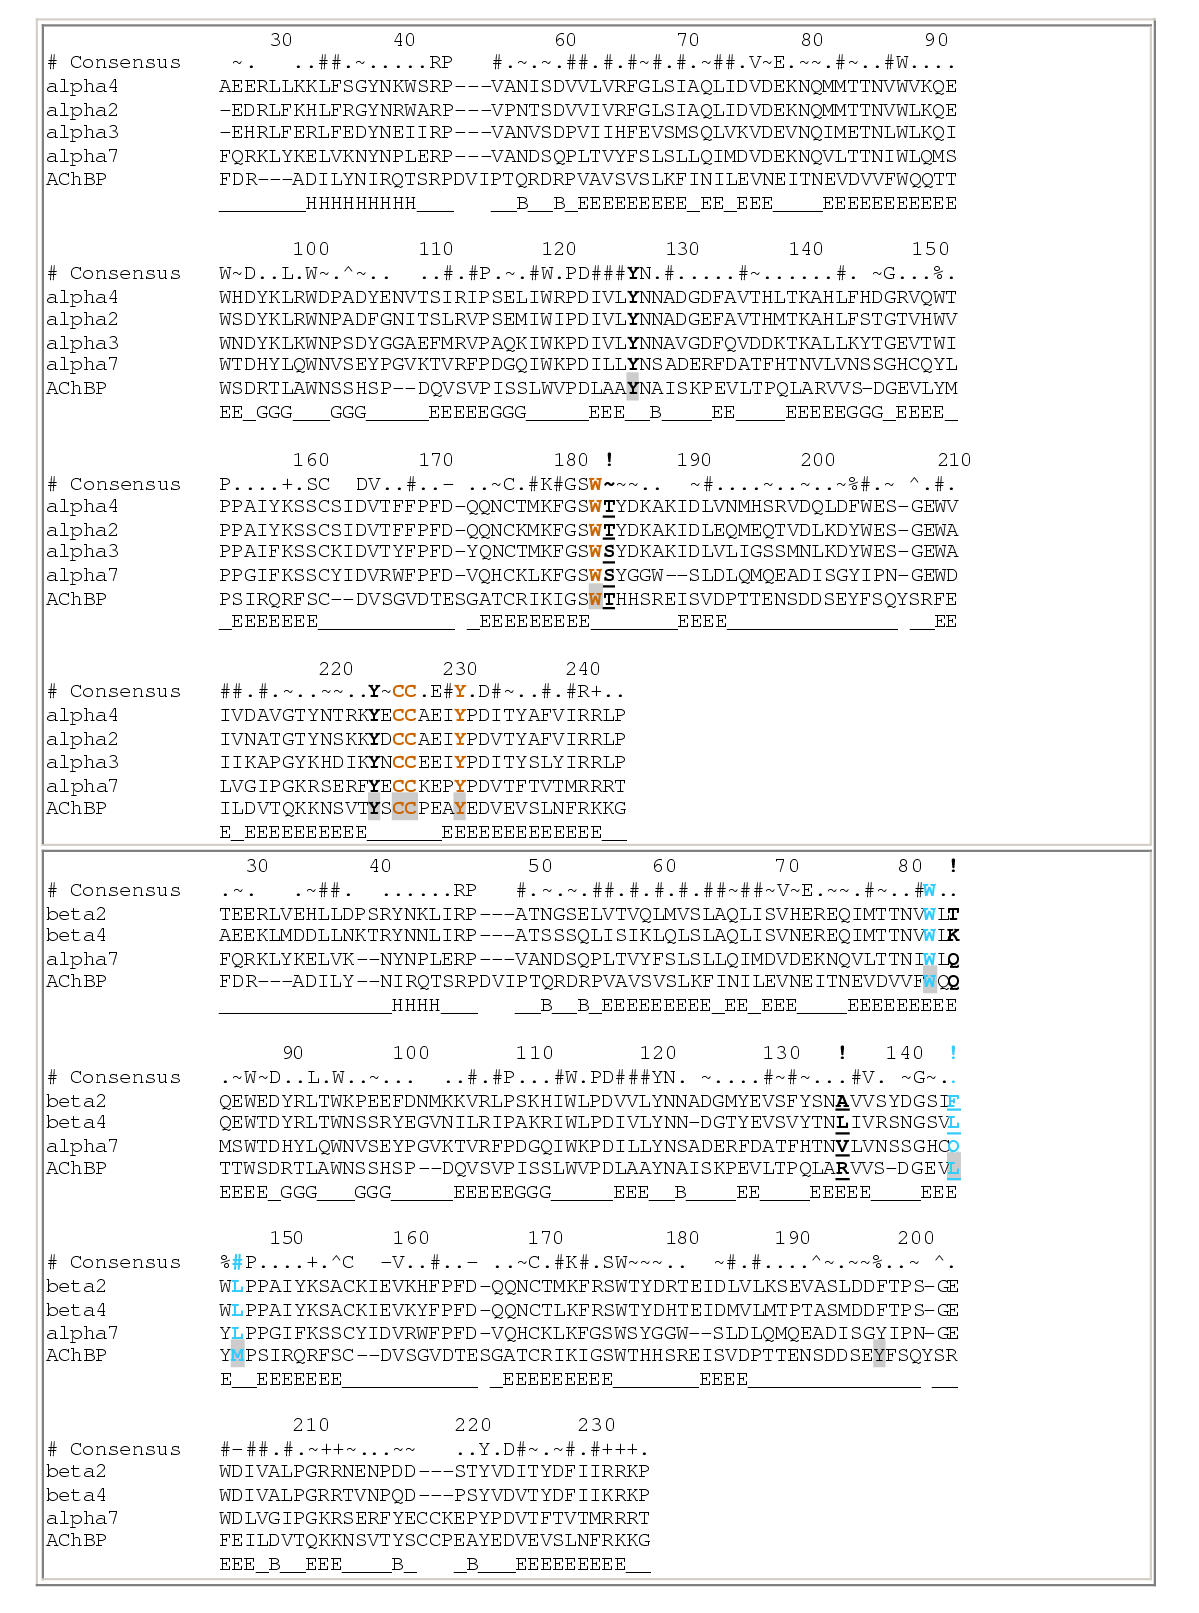 http://static-content.springer.com/image/art%3A10.1186%2F1472-6807-2-1/MediaObjects/12900_2001_Article_6_Fig1_HTML.jpg